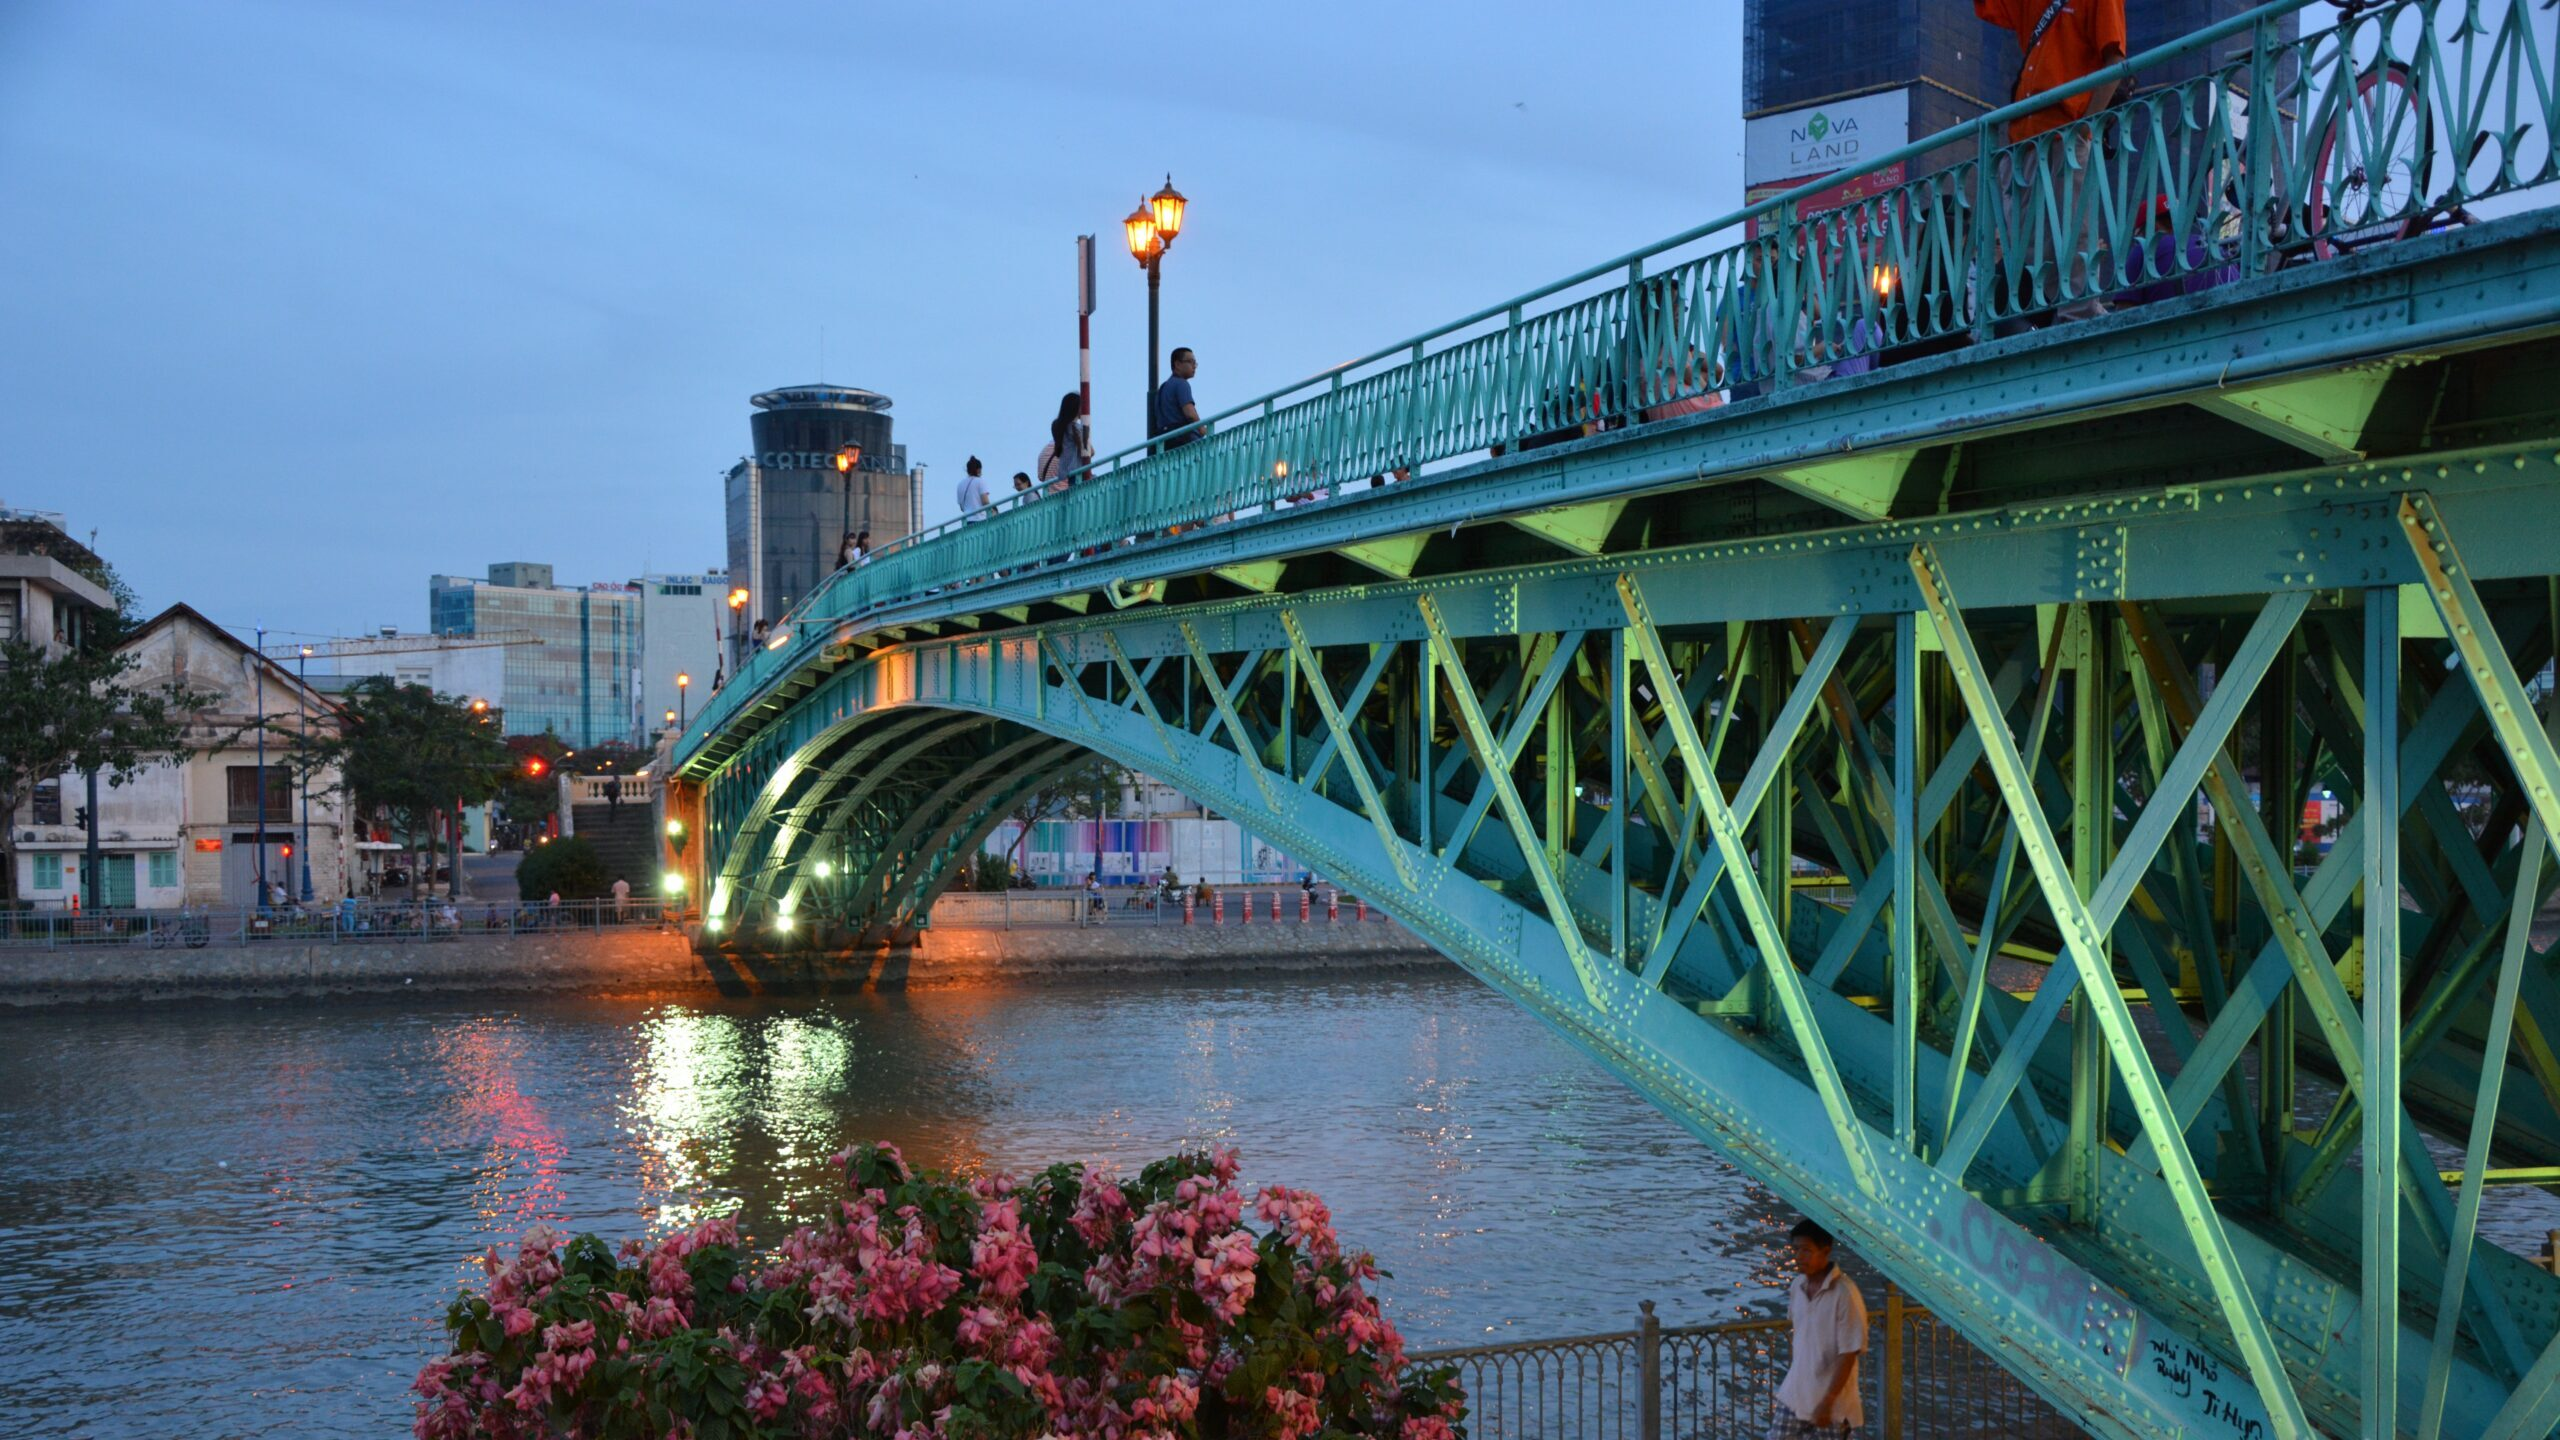 A photo of a bridge over a body of water in a city